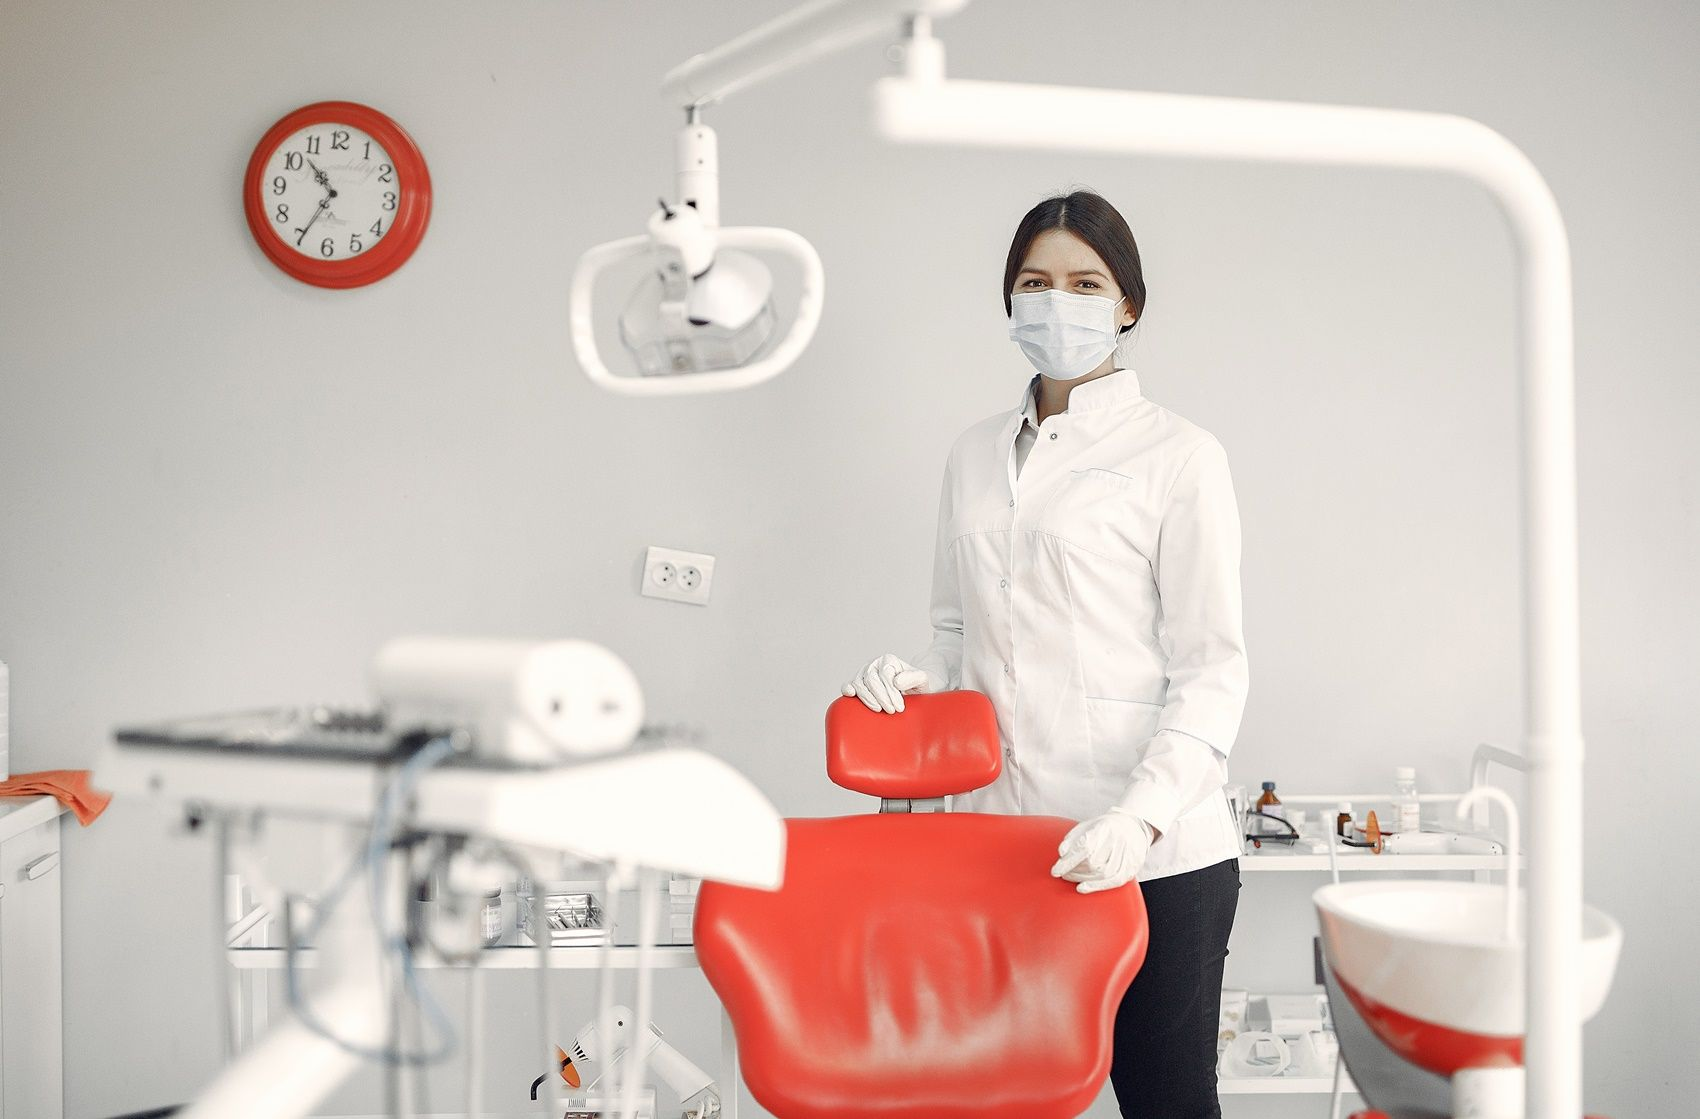 How to set up a dental office?